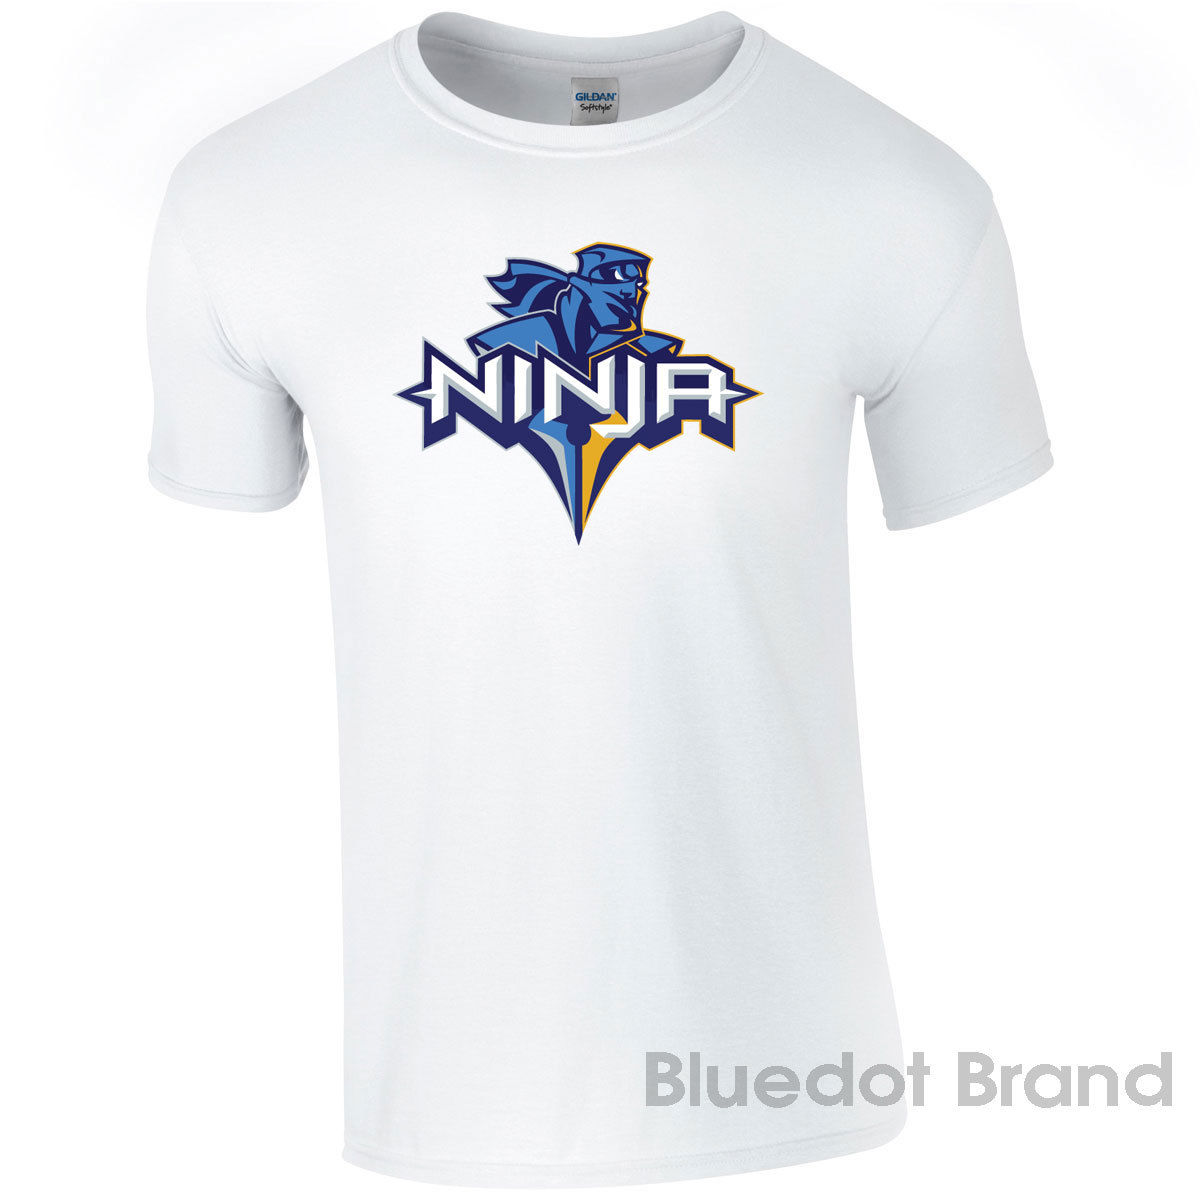 US $12 09 45% OFF|Team Ninja Fort Battle Royale PC Twitch Streamer Fan T  Shirt Tee Top Youtube Free shipping Harajuku Tops t shirt-in T-Shirts from